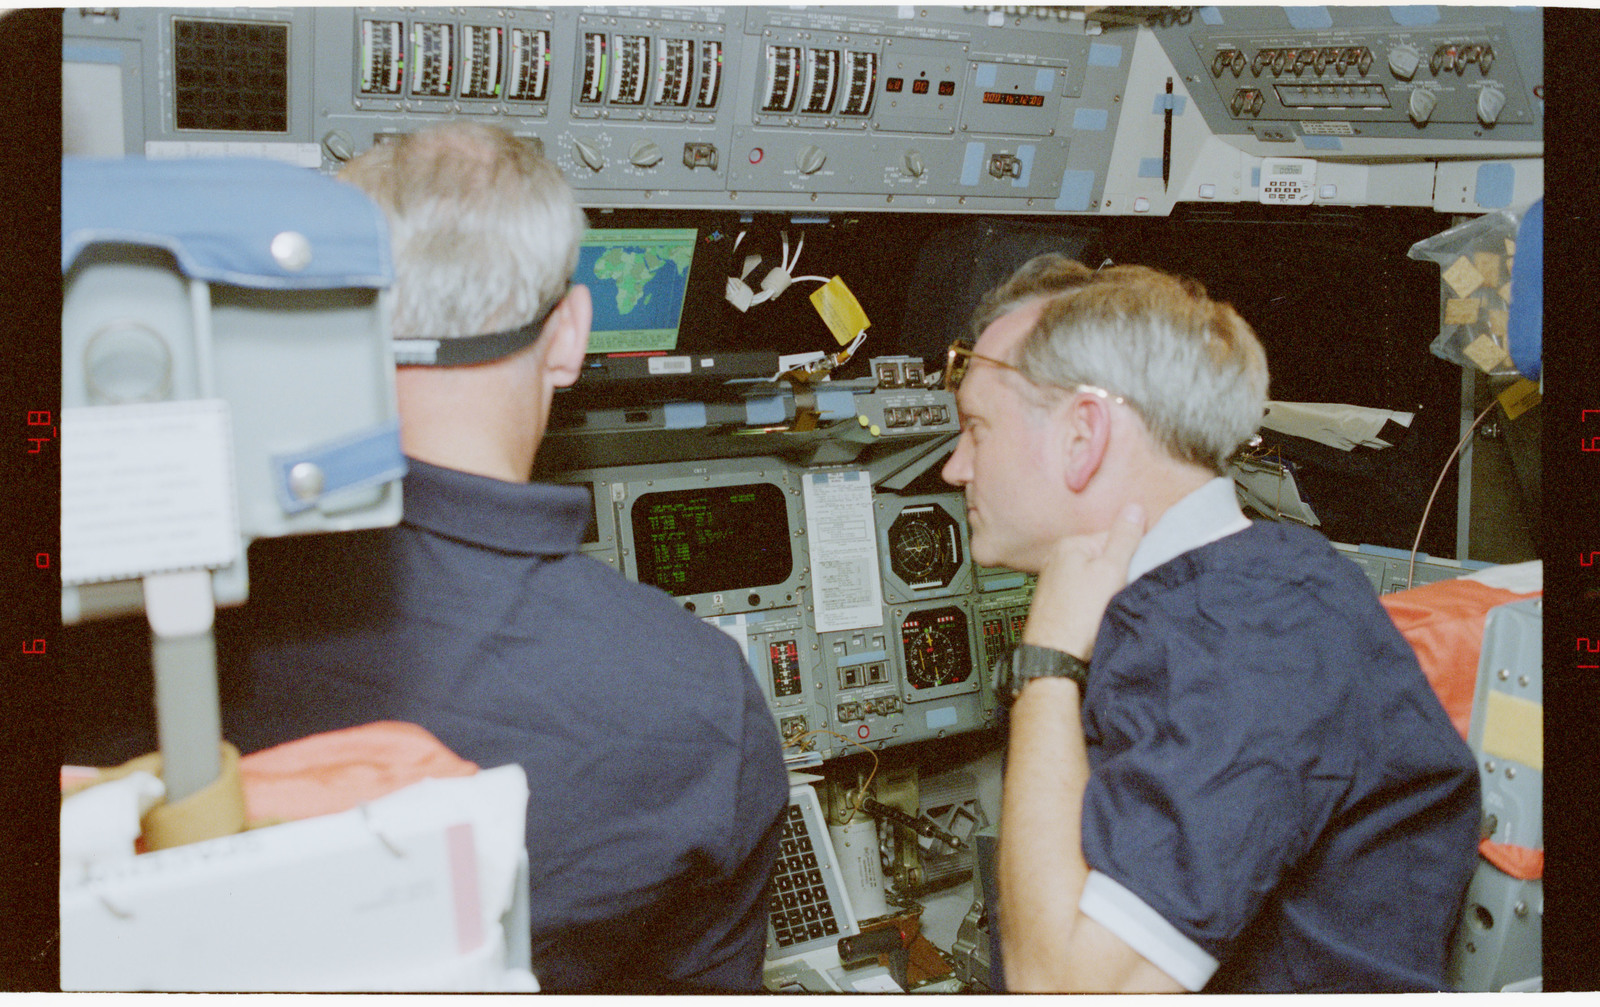 STS079-348-032 - STS-079 - STS-79 crew activities on the flight deck